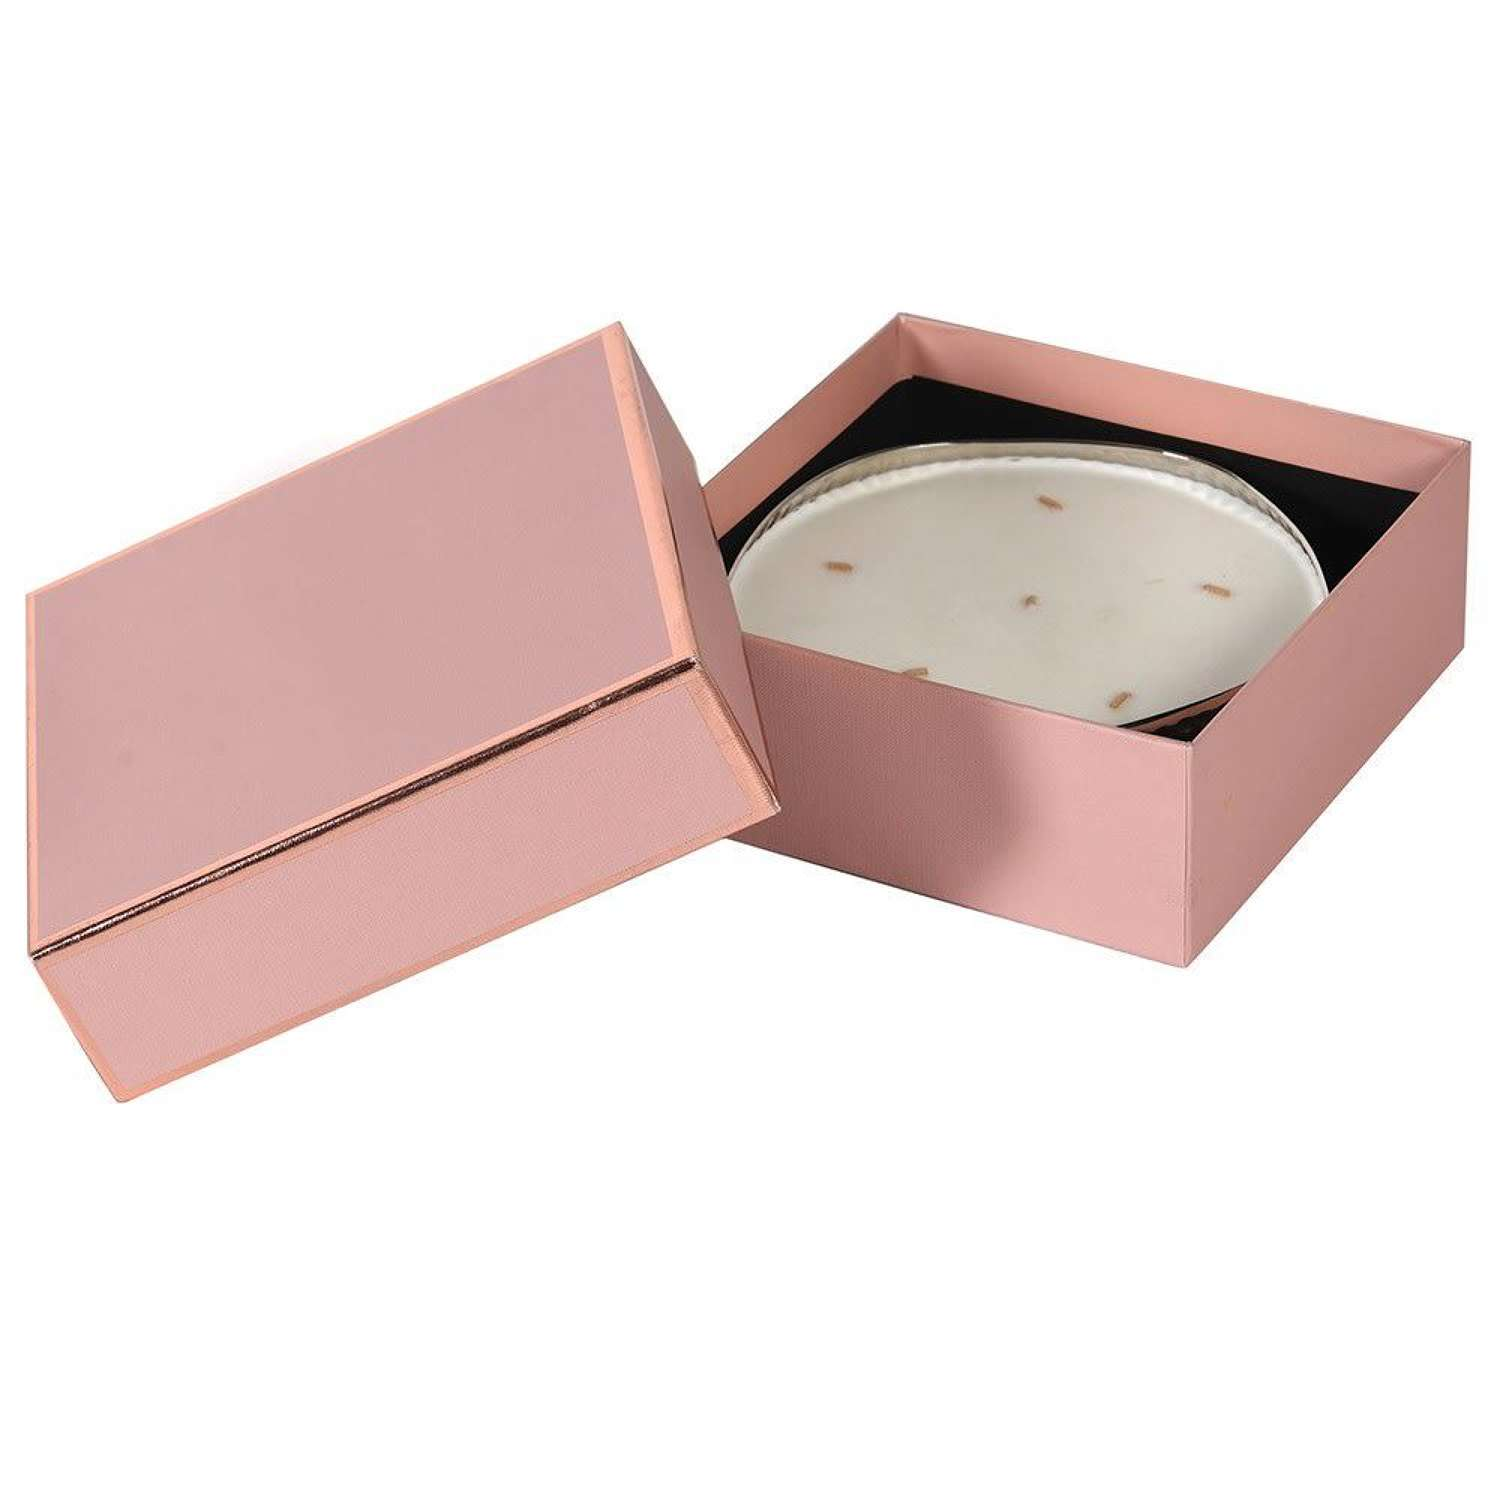 Round 6 wick, tuberose scented candle - gift boxed